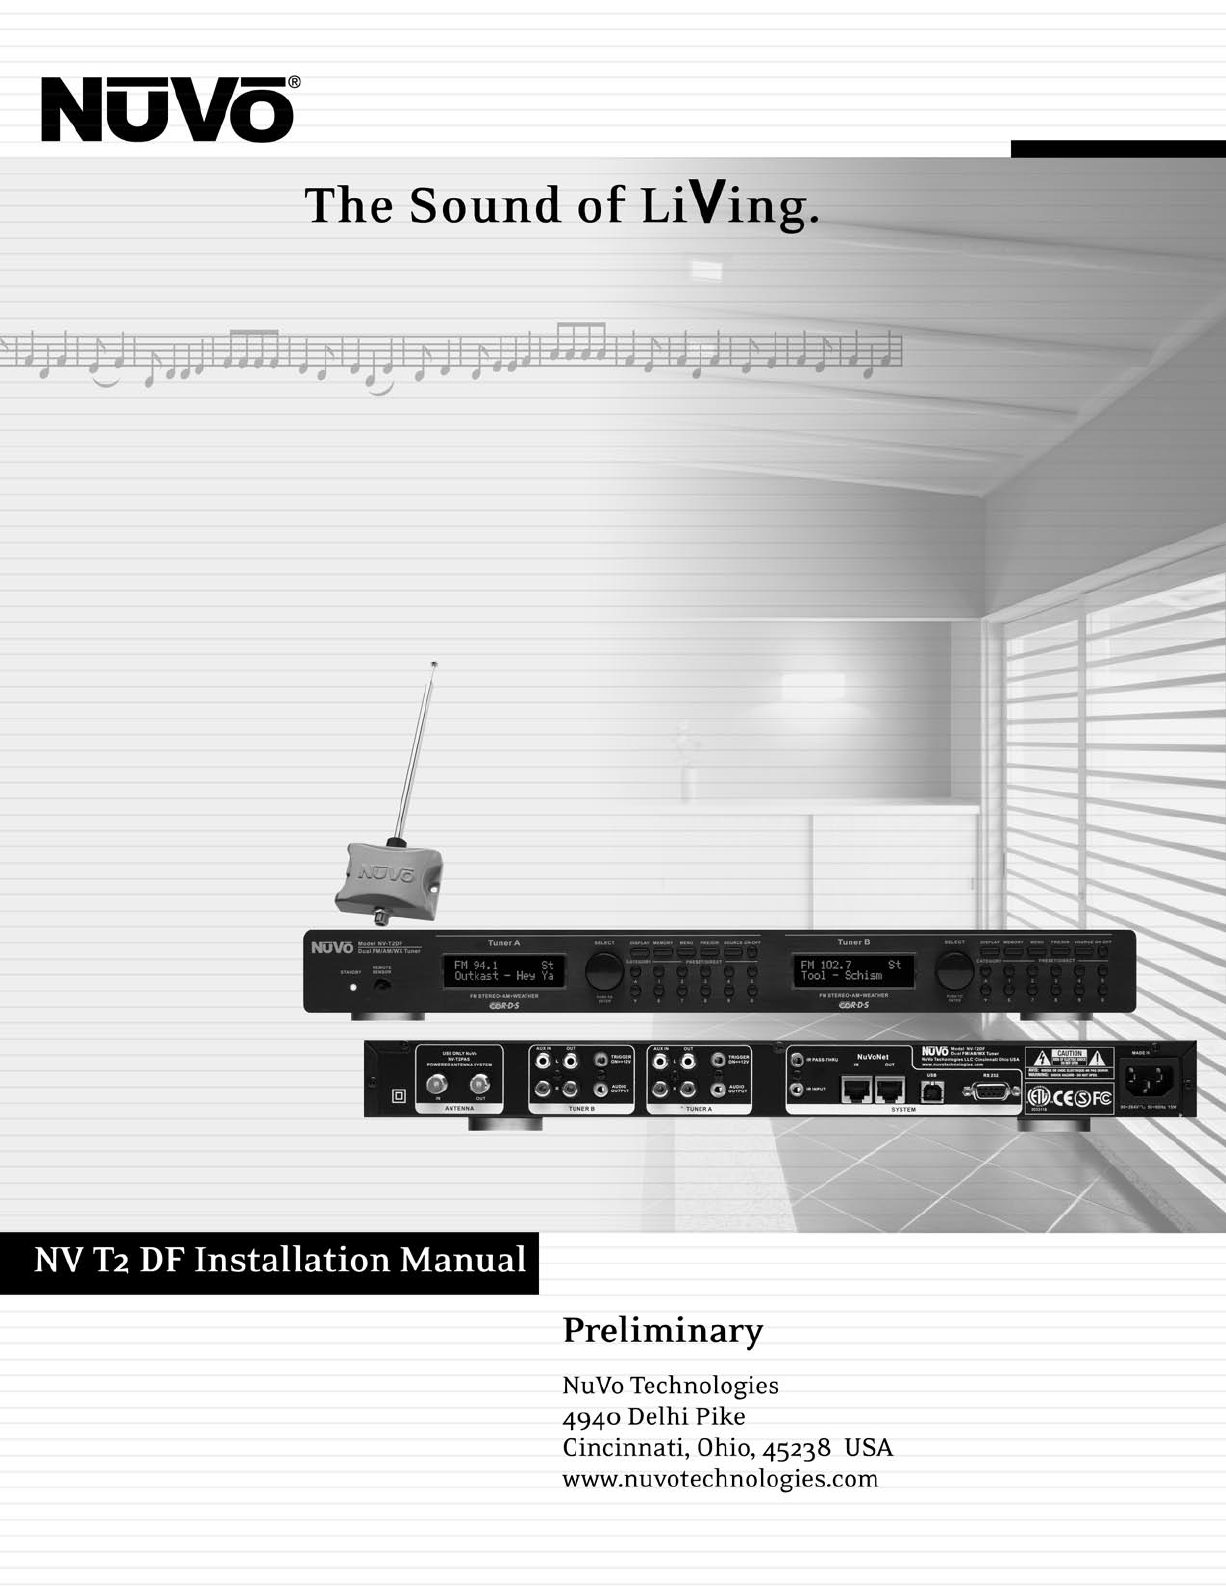 nuvo stereo system nv t2df user guide manualsonline com Nuvo Grand Concerto Nuvo Sound System